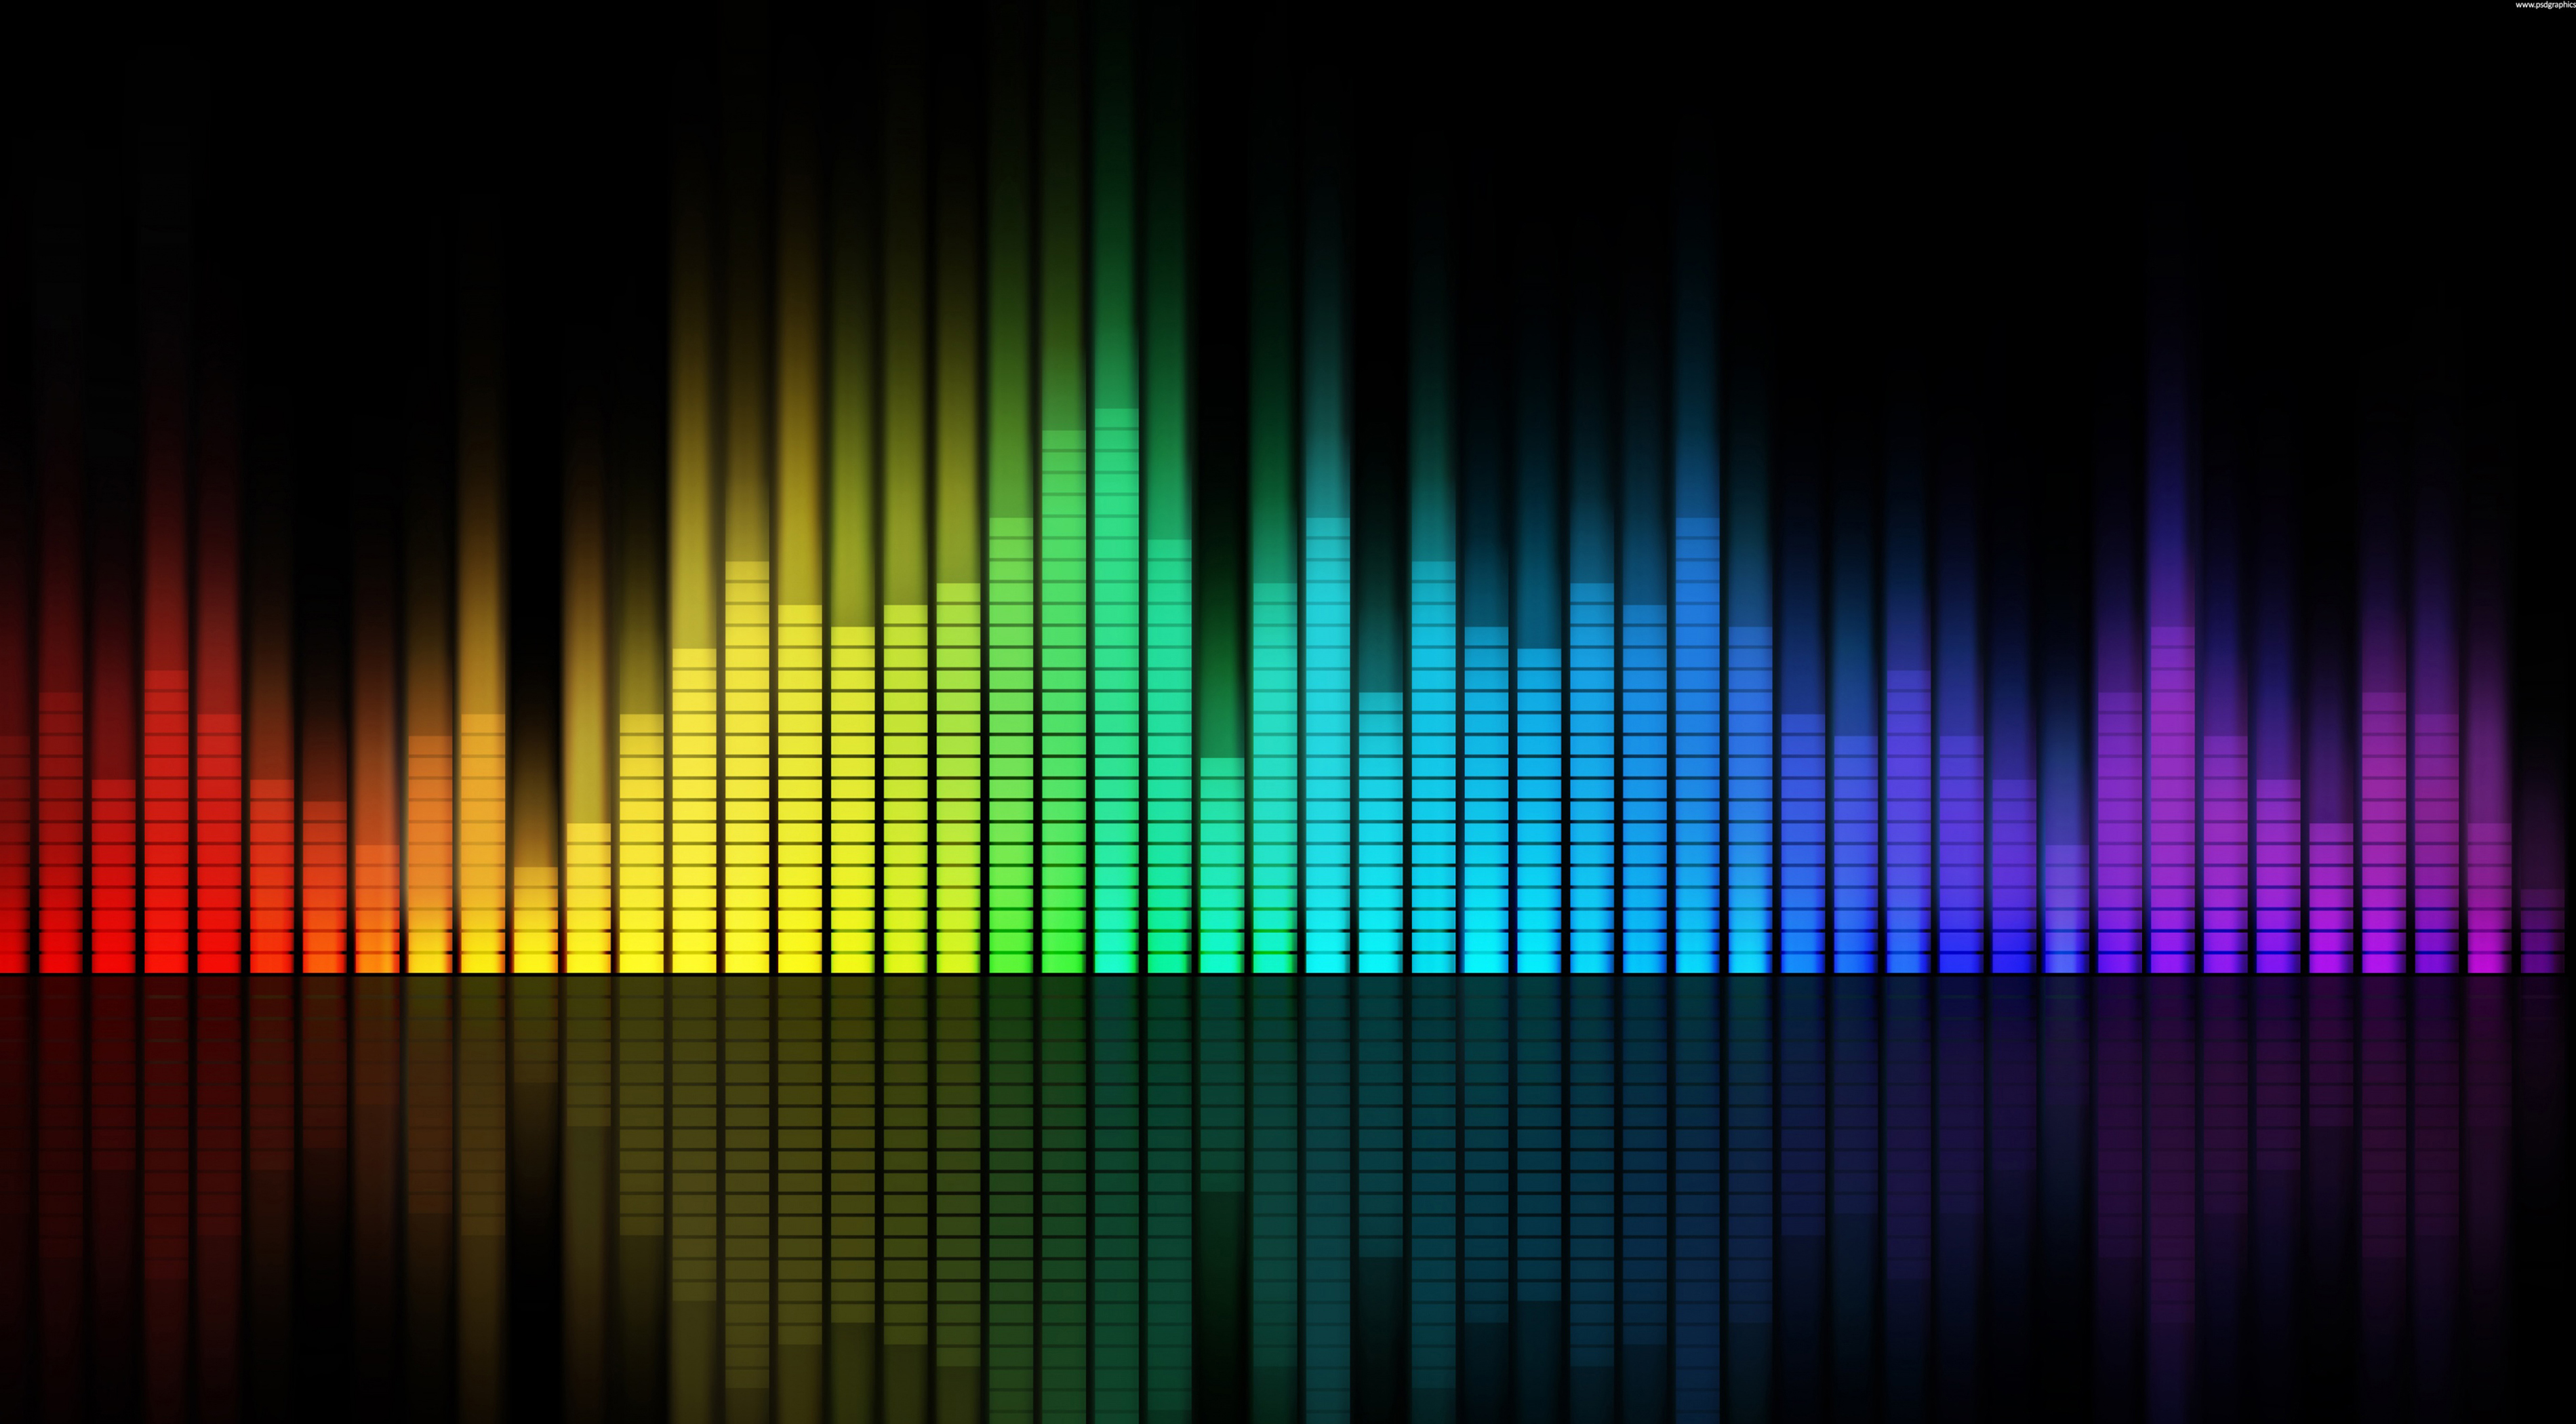 spectrum background music beat  music  beat  happy background image for free download